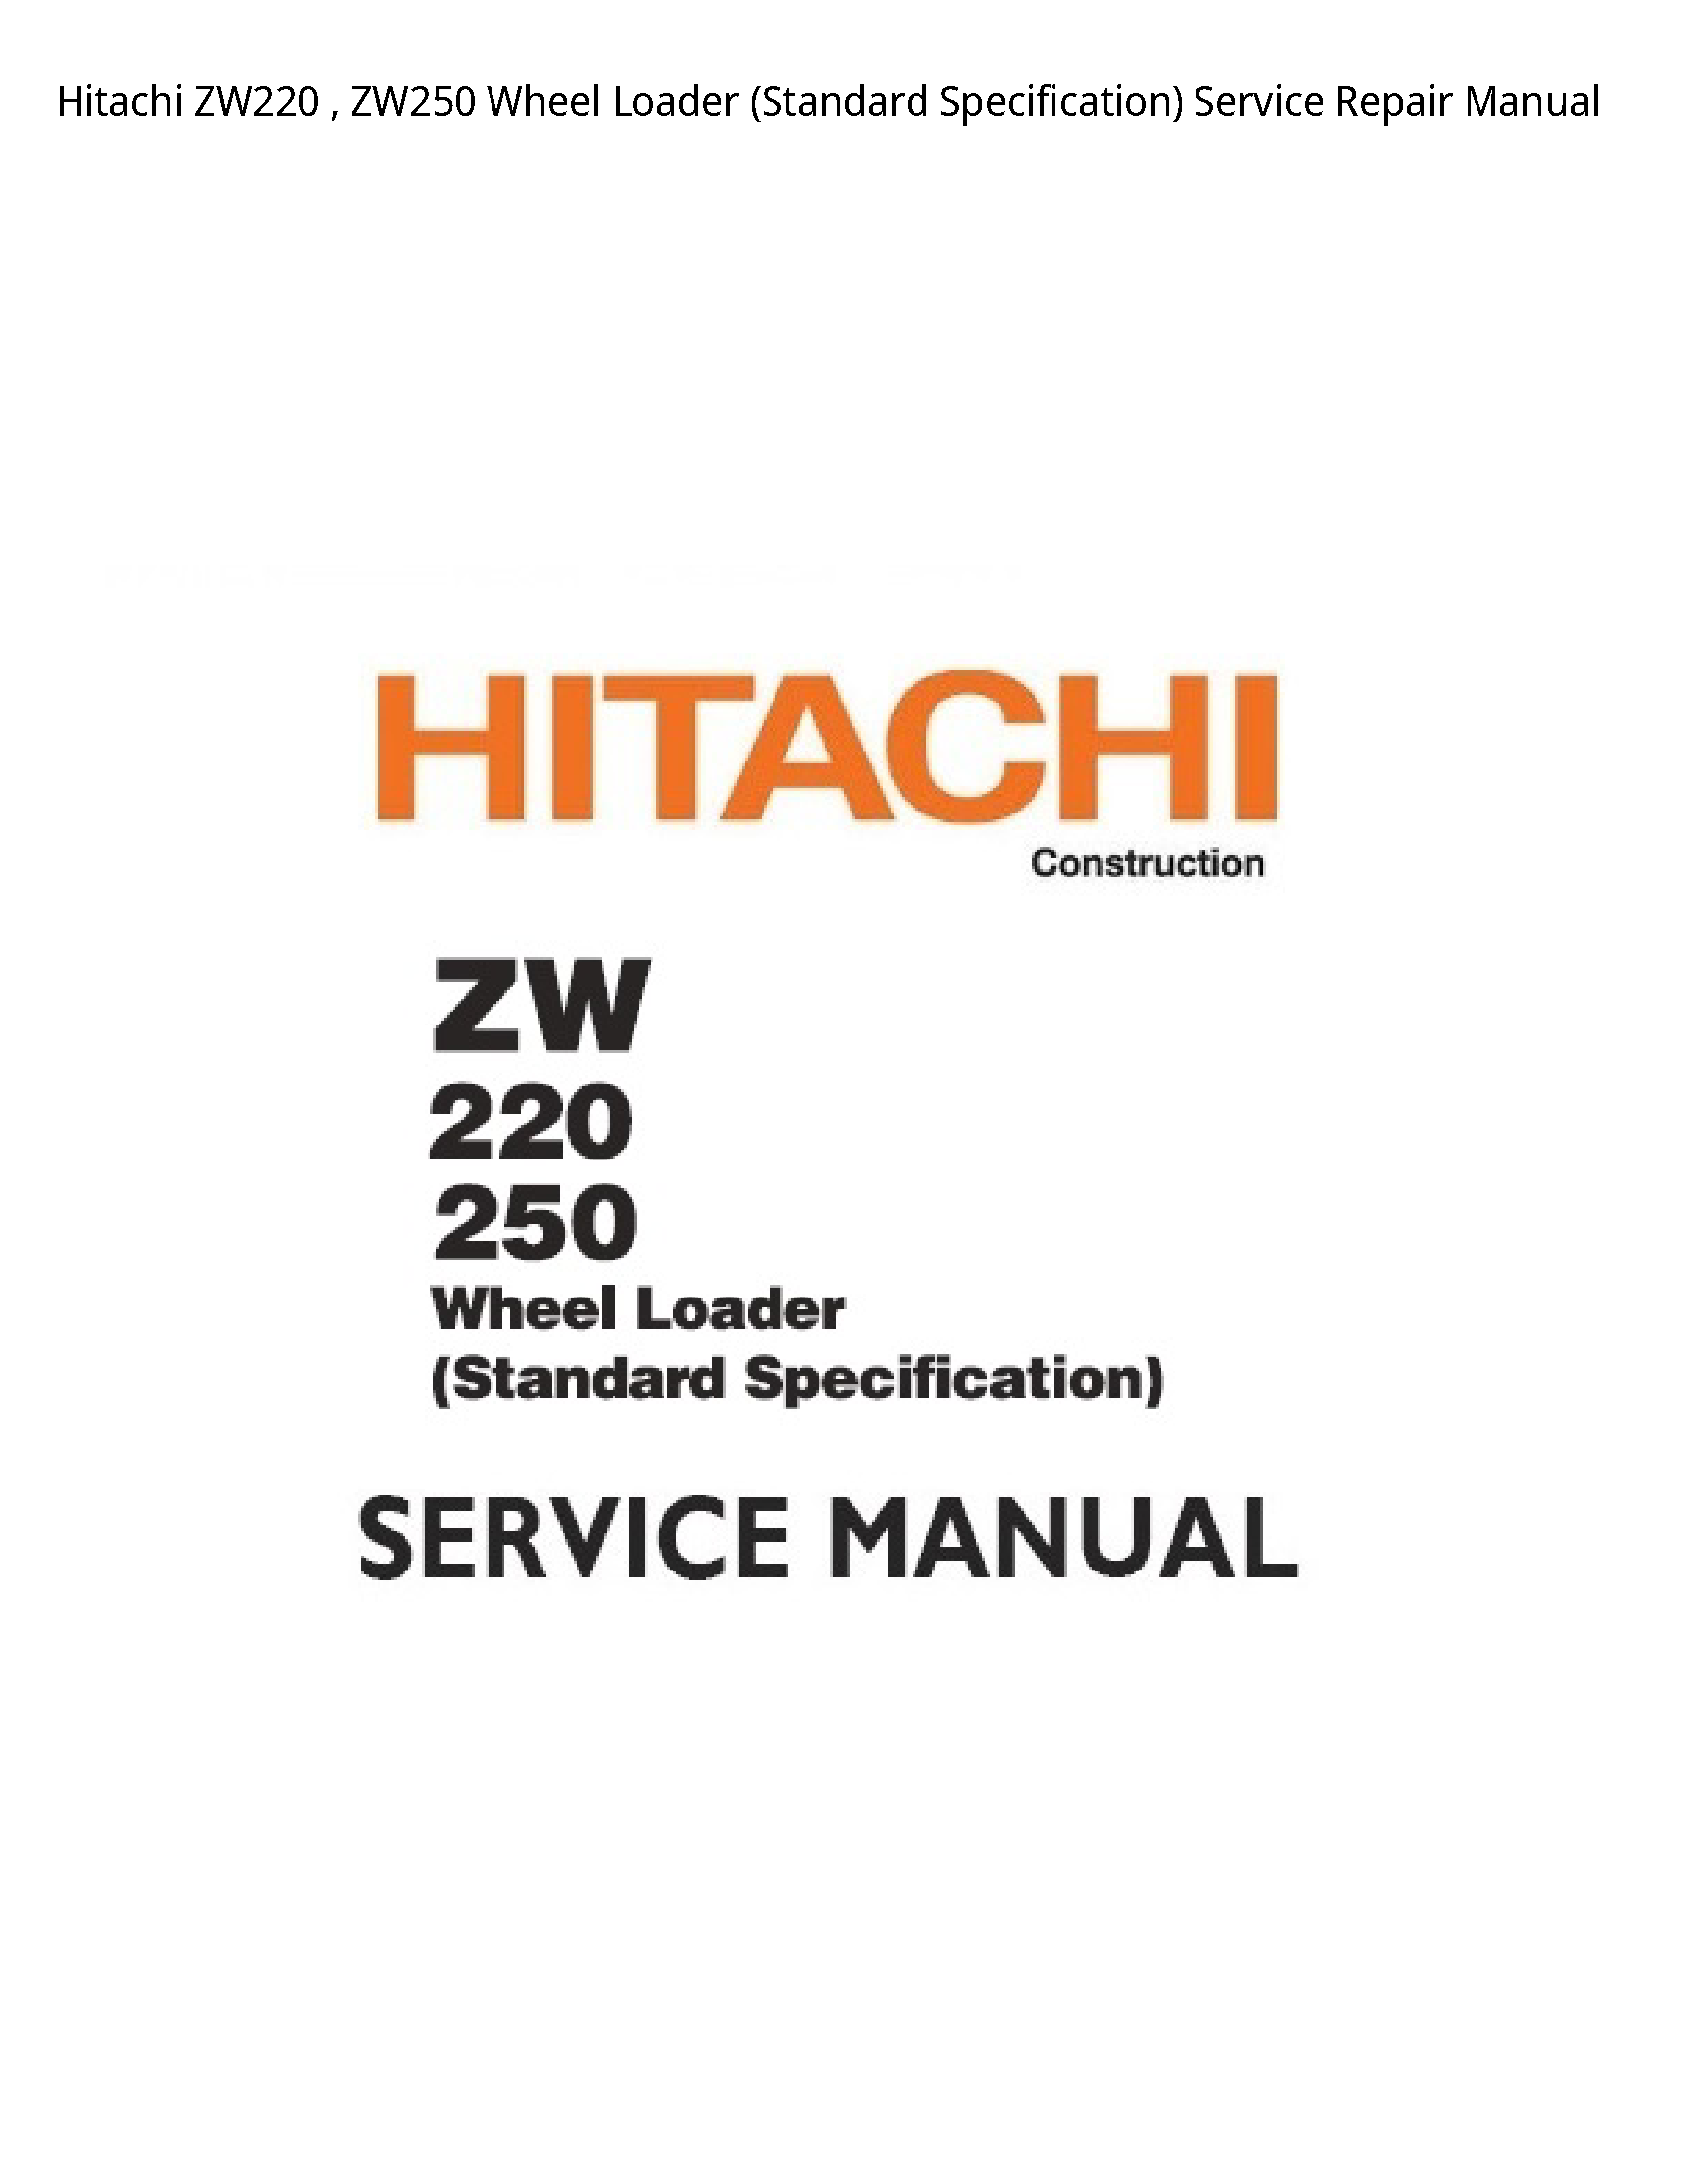 Hitachi ZW220 Wheel Loader (Standard Specification) manual